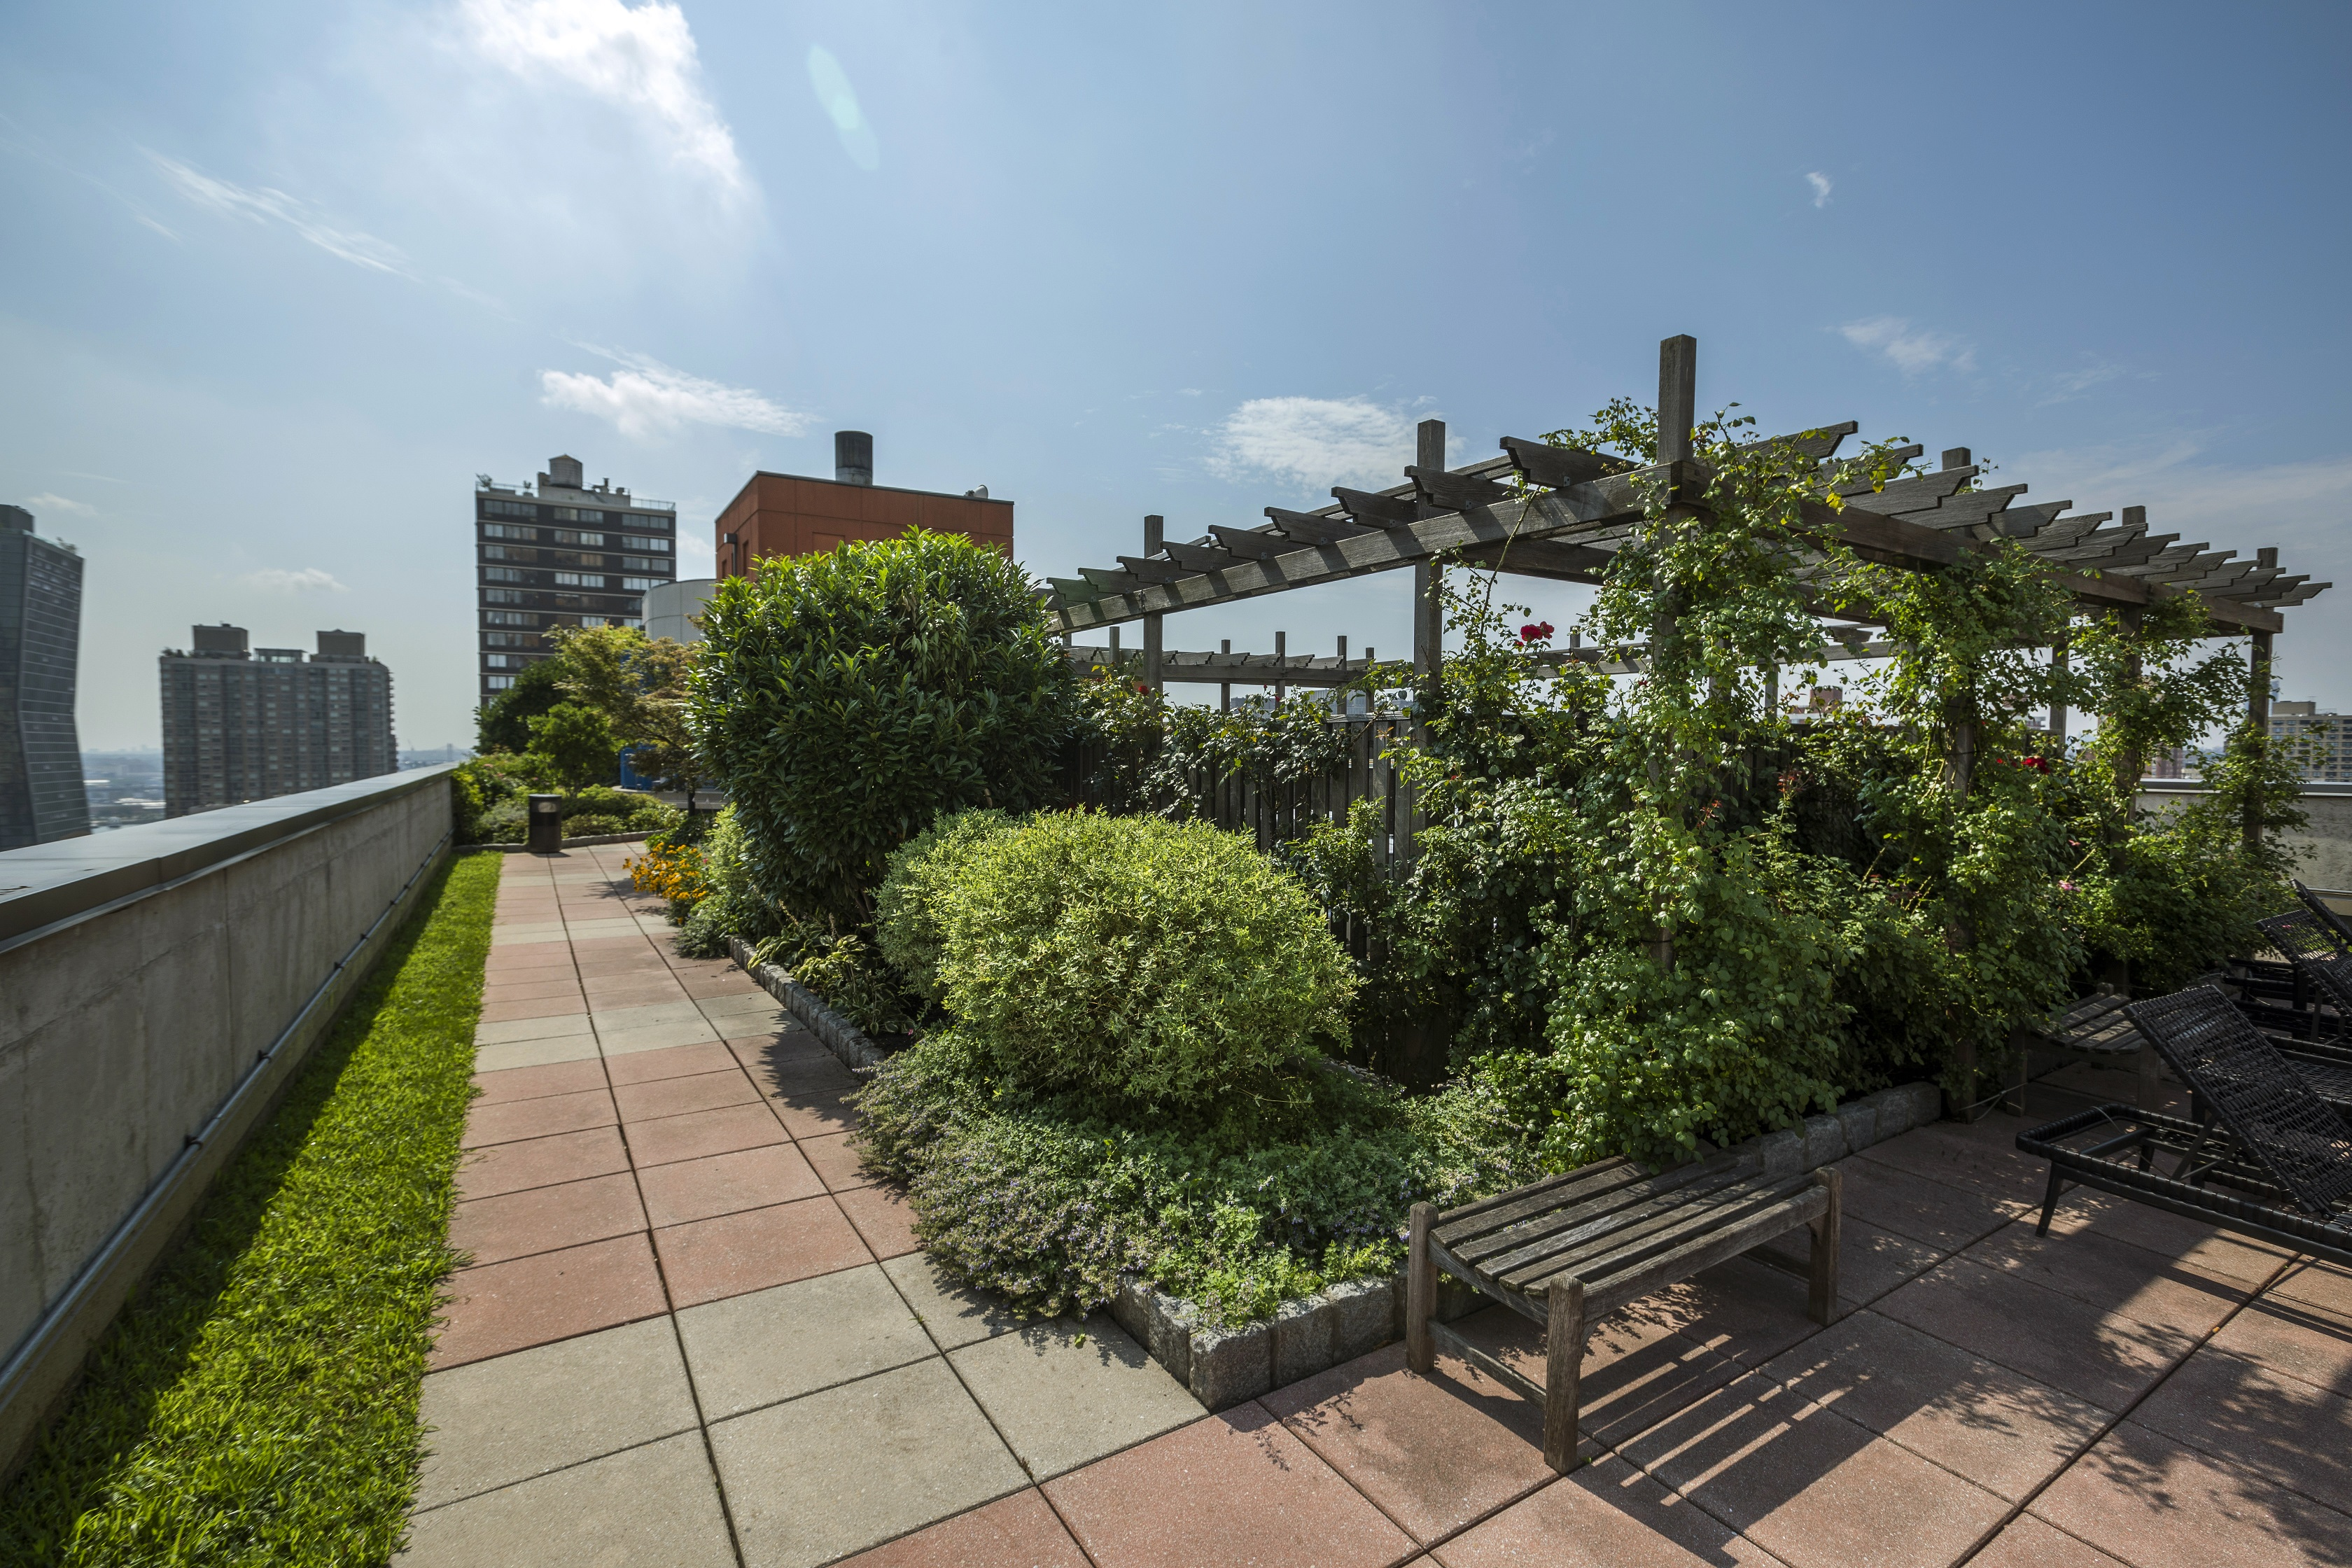 Get a bird's eye view as you wind your way through the path of this endless rooftop garden sanctuary.